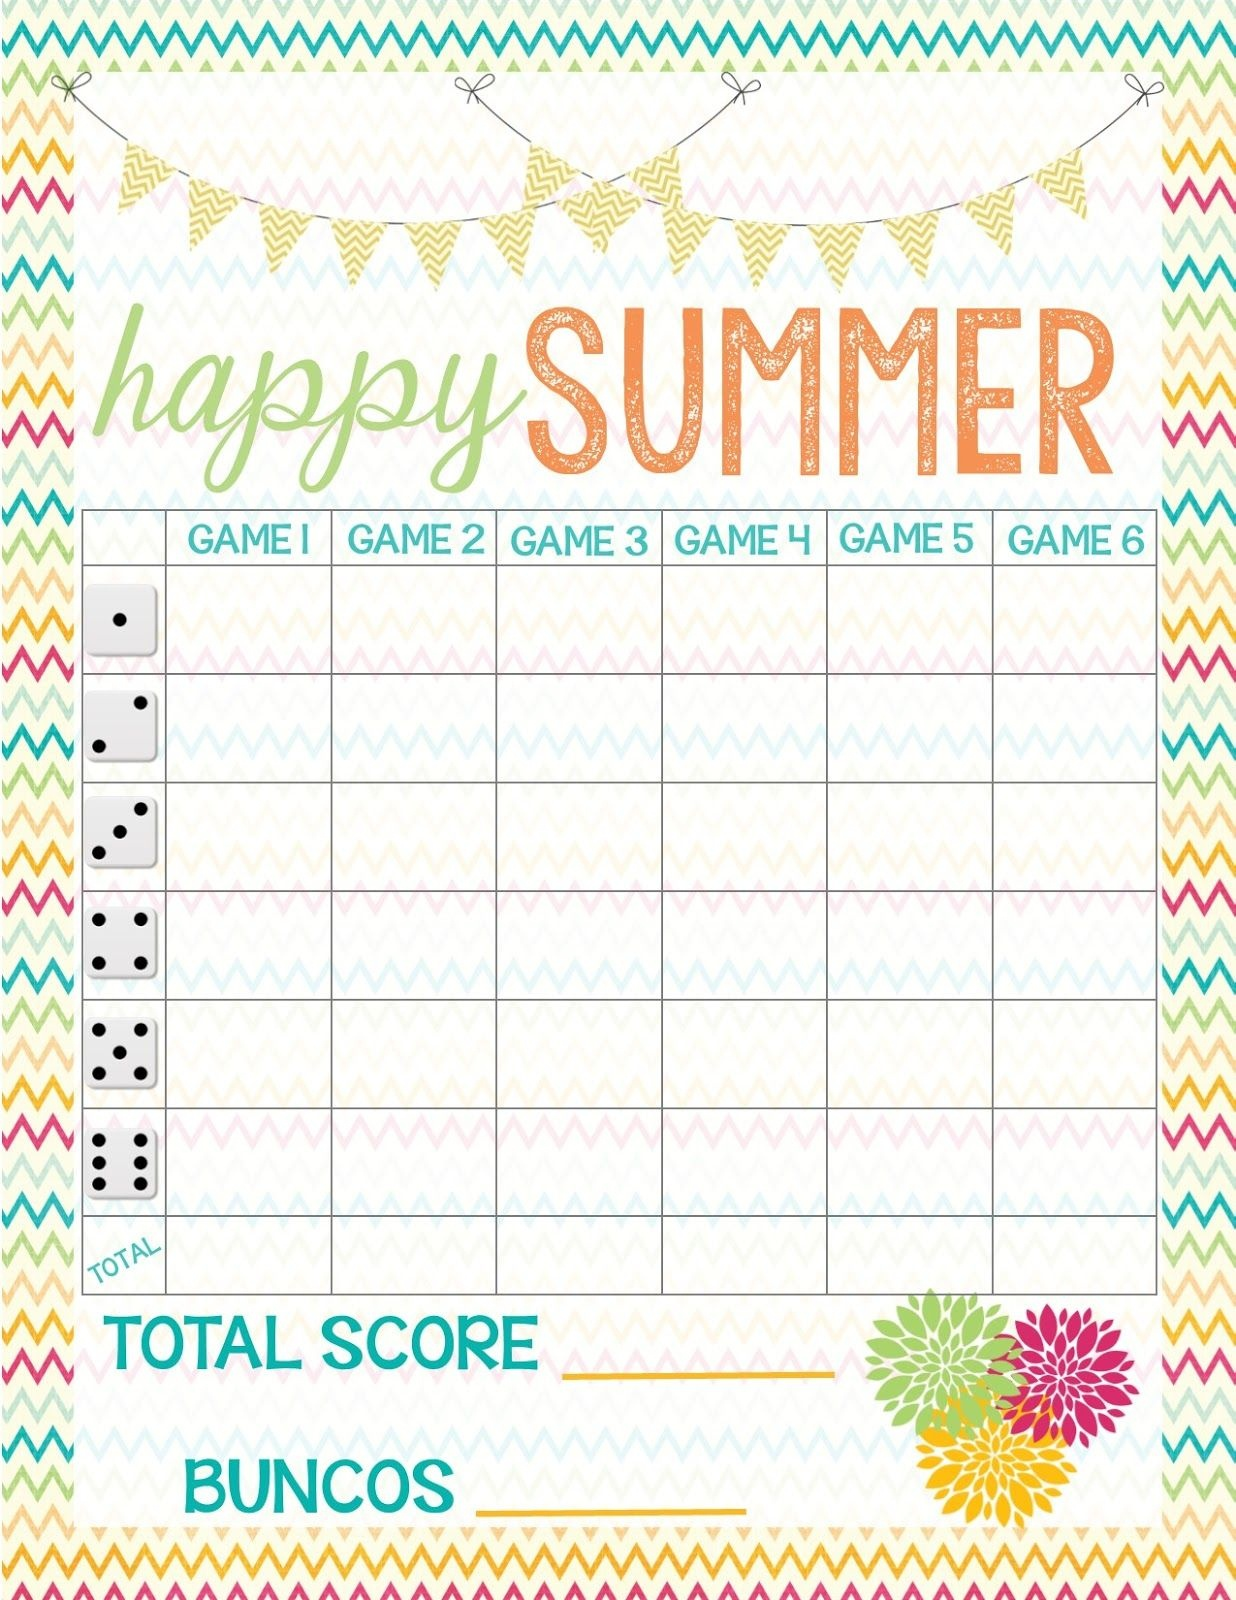 Recipes From Stephanie: Free Bunco Score Sheet   Bunco In 2019 - Printable Bunco Score Cards Free